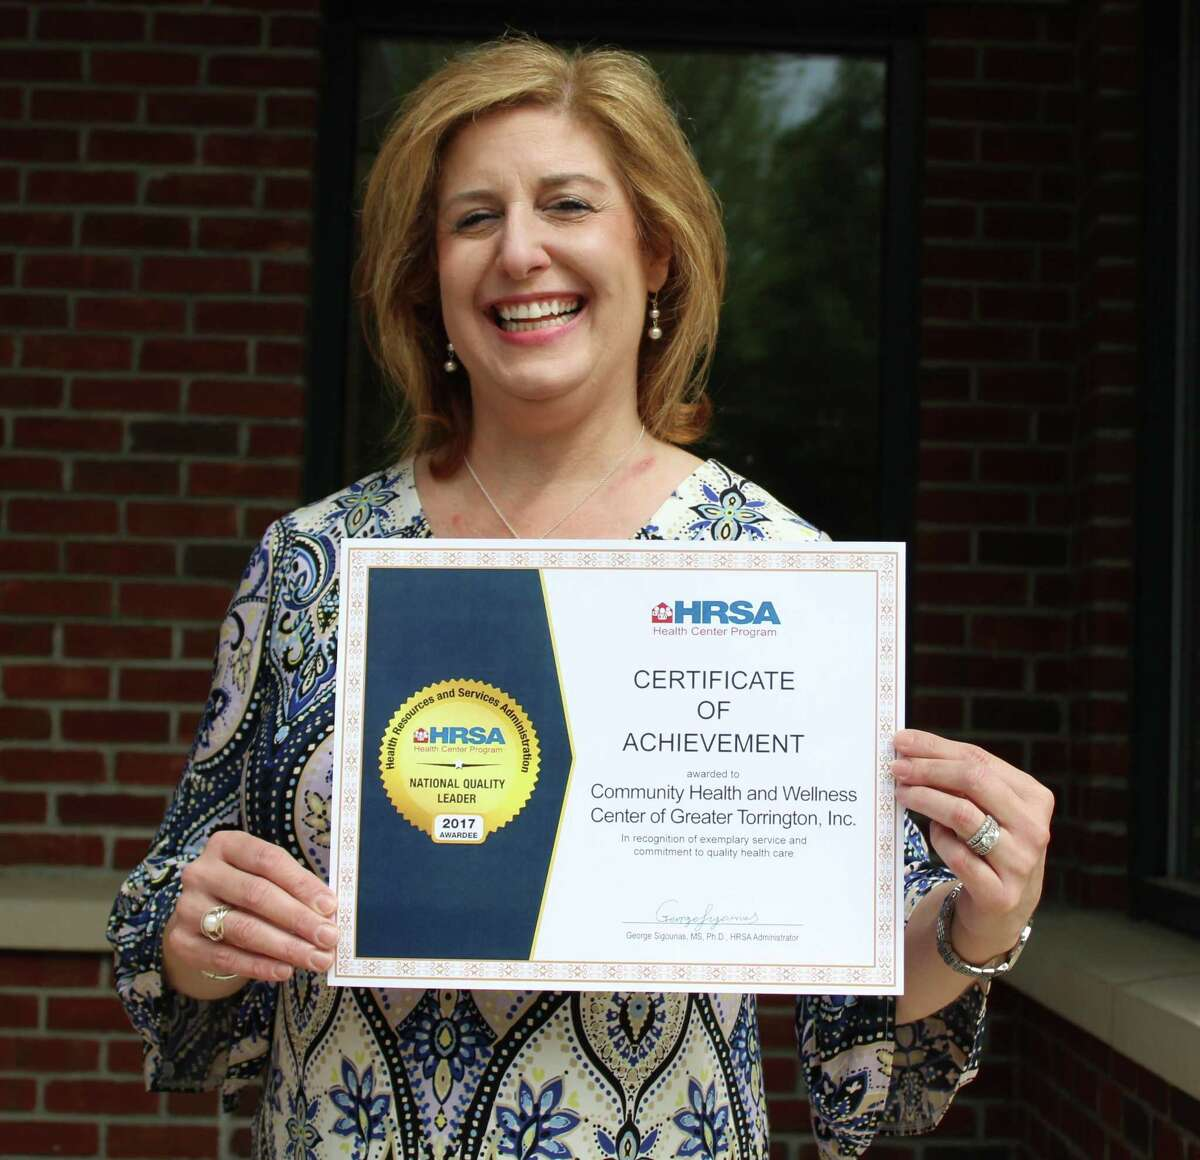 Community Health & Wellness Center, based in Torrington, recently received the National Quality Leader Award from the Health Resources and Services Administration. Pictured is CEO Joanne Bourdas.